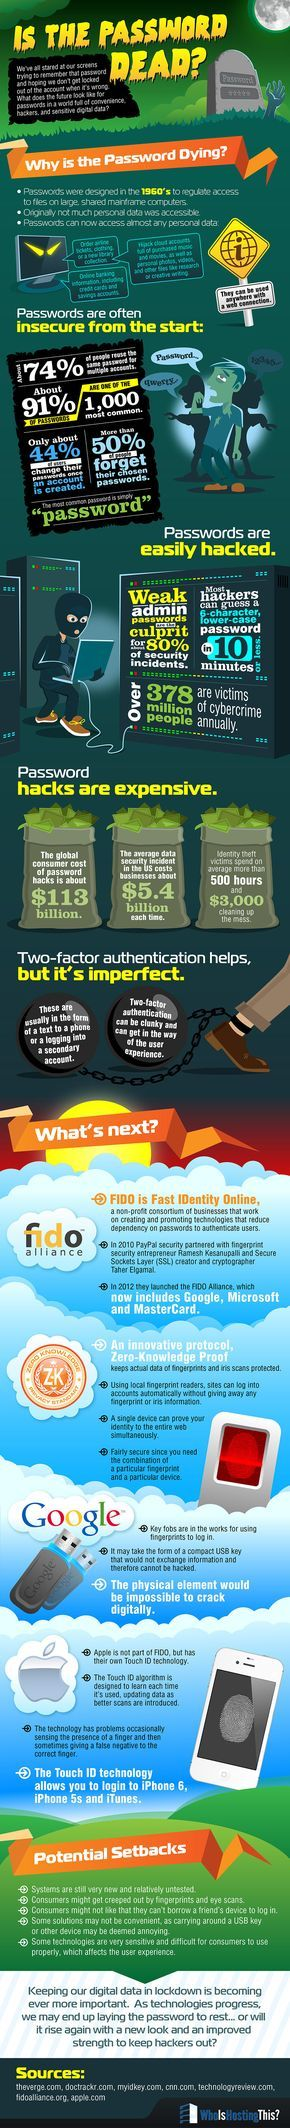 Infographic: Is the Password Dead?We've all started at our screens trying to remember that password and hoping we don't get locked out of the account when it's wrong. What does the future look like for passwords in a world full of convenience, hackers, and sensitive digital data?